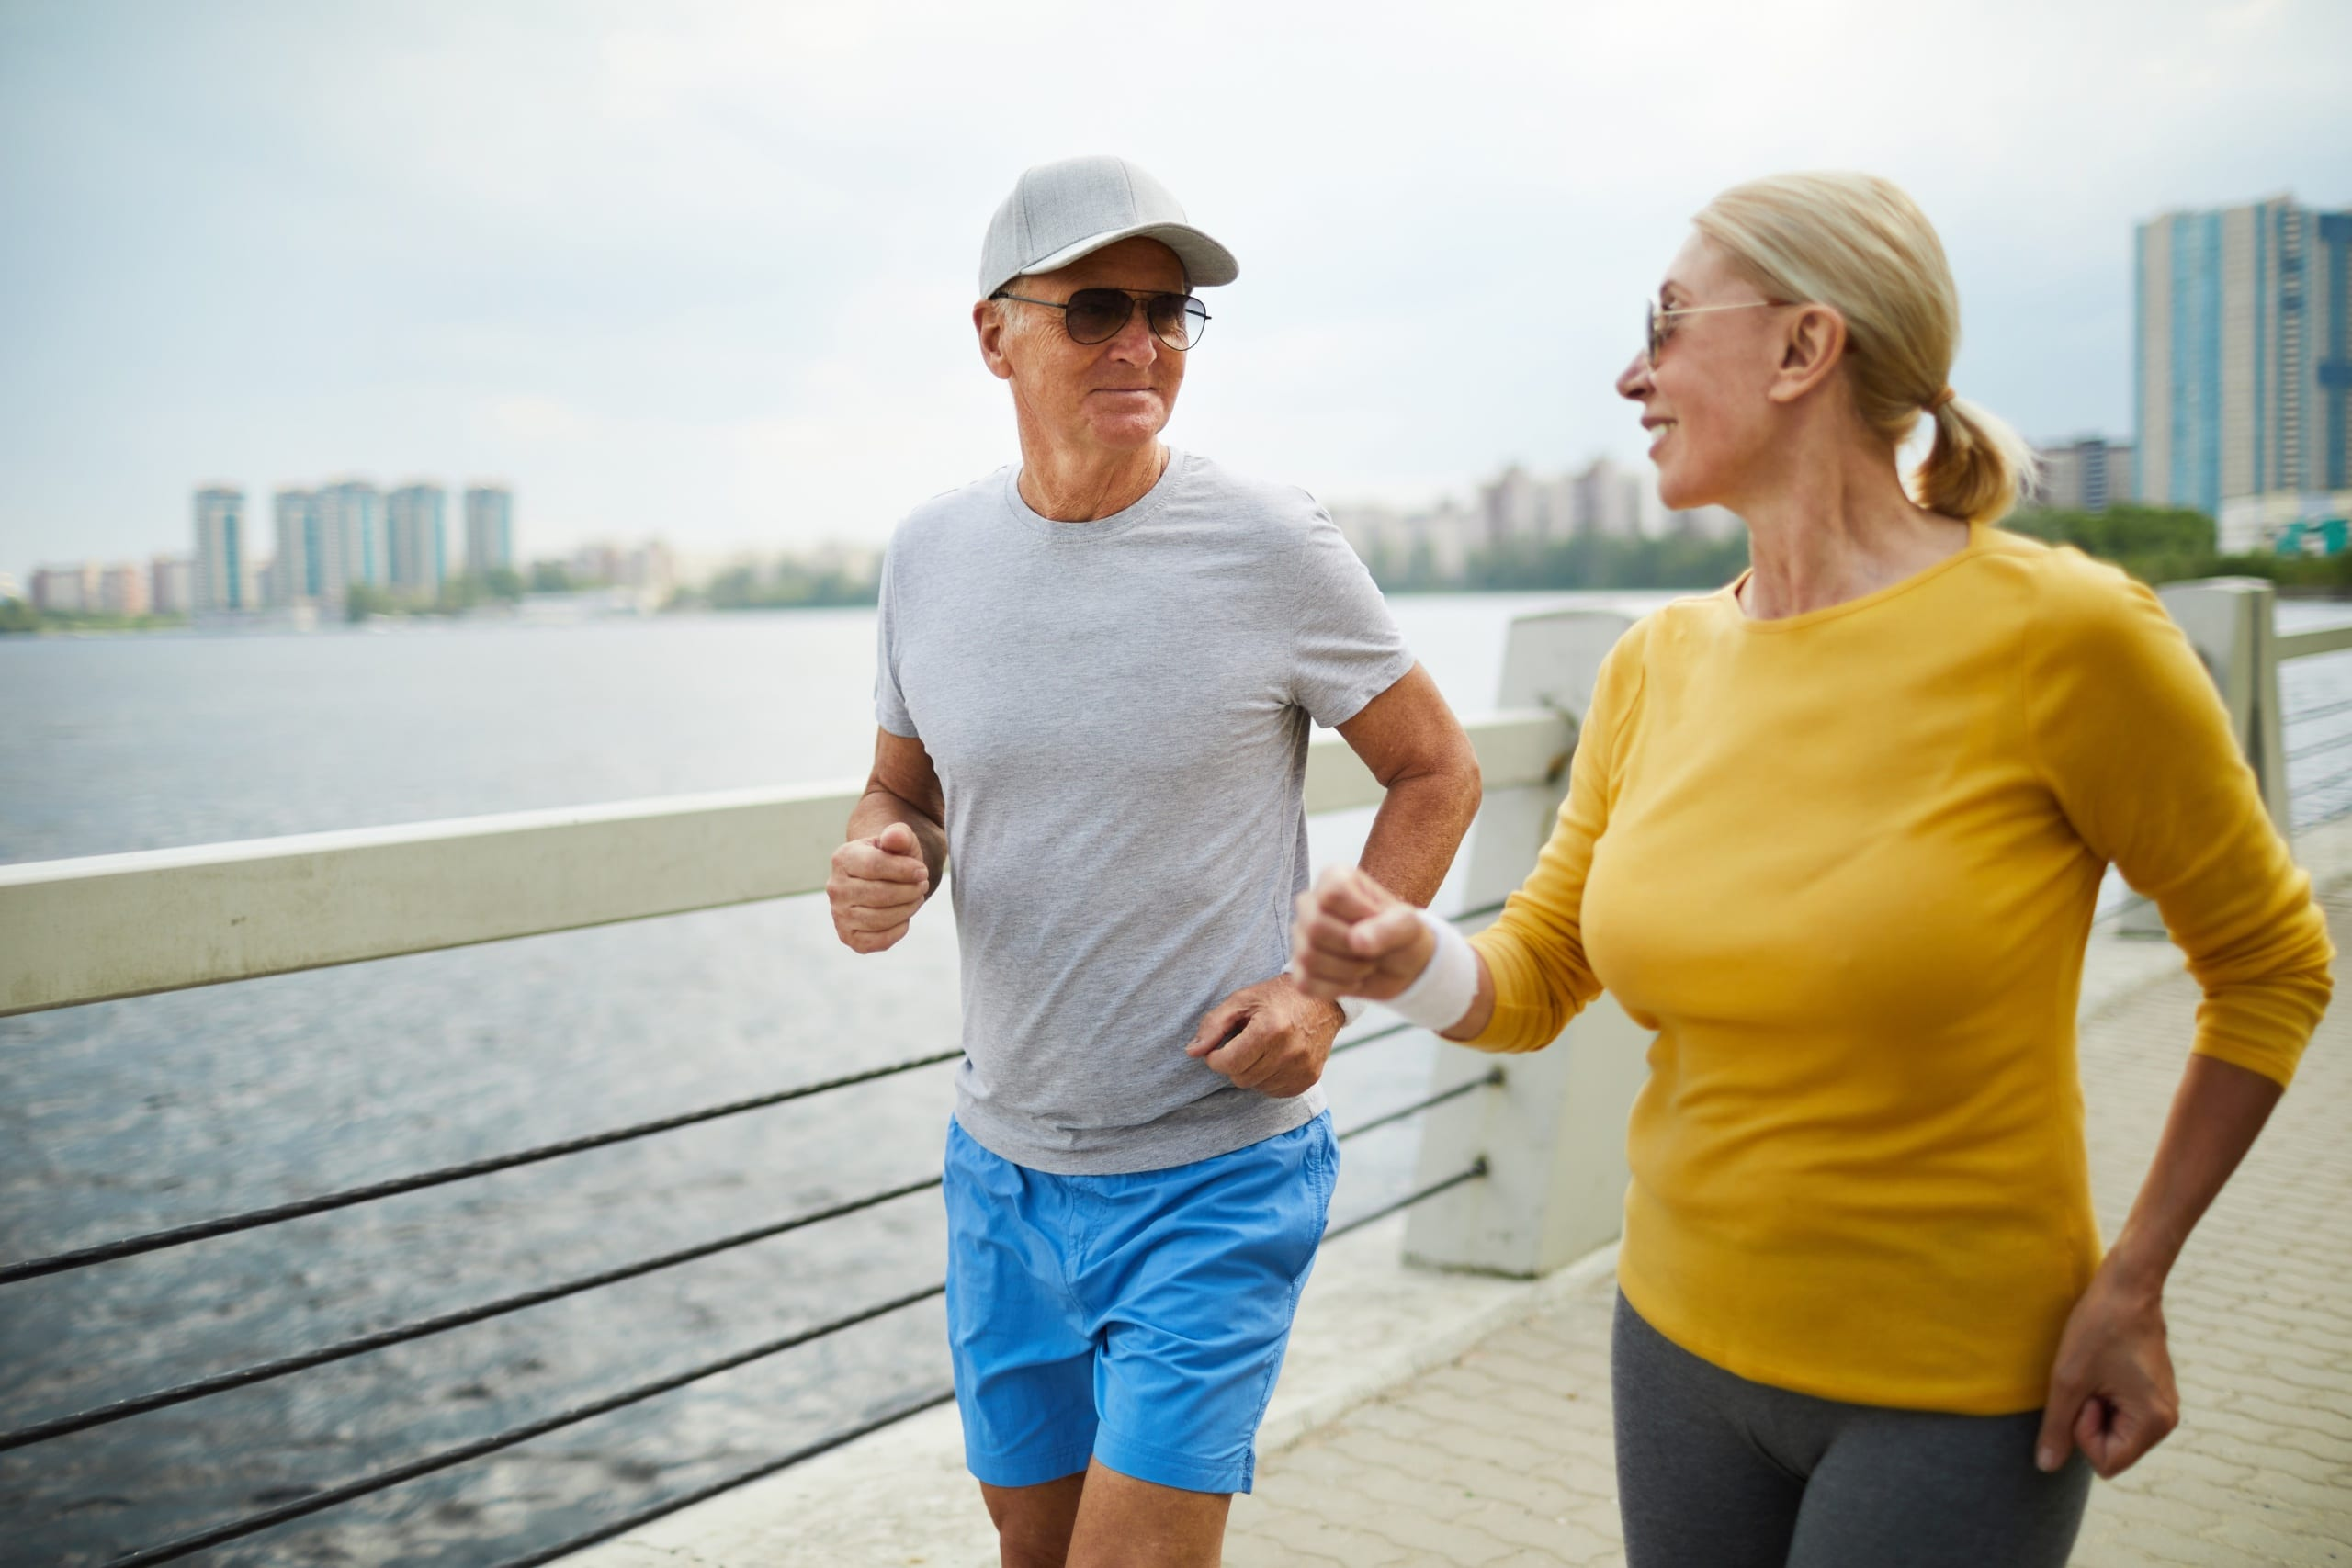 aerobic exercise protects liver